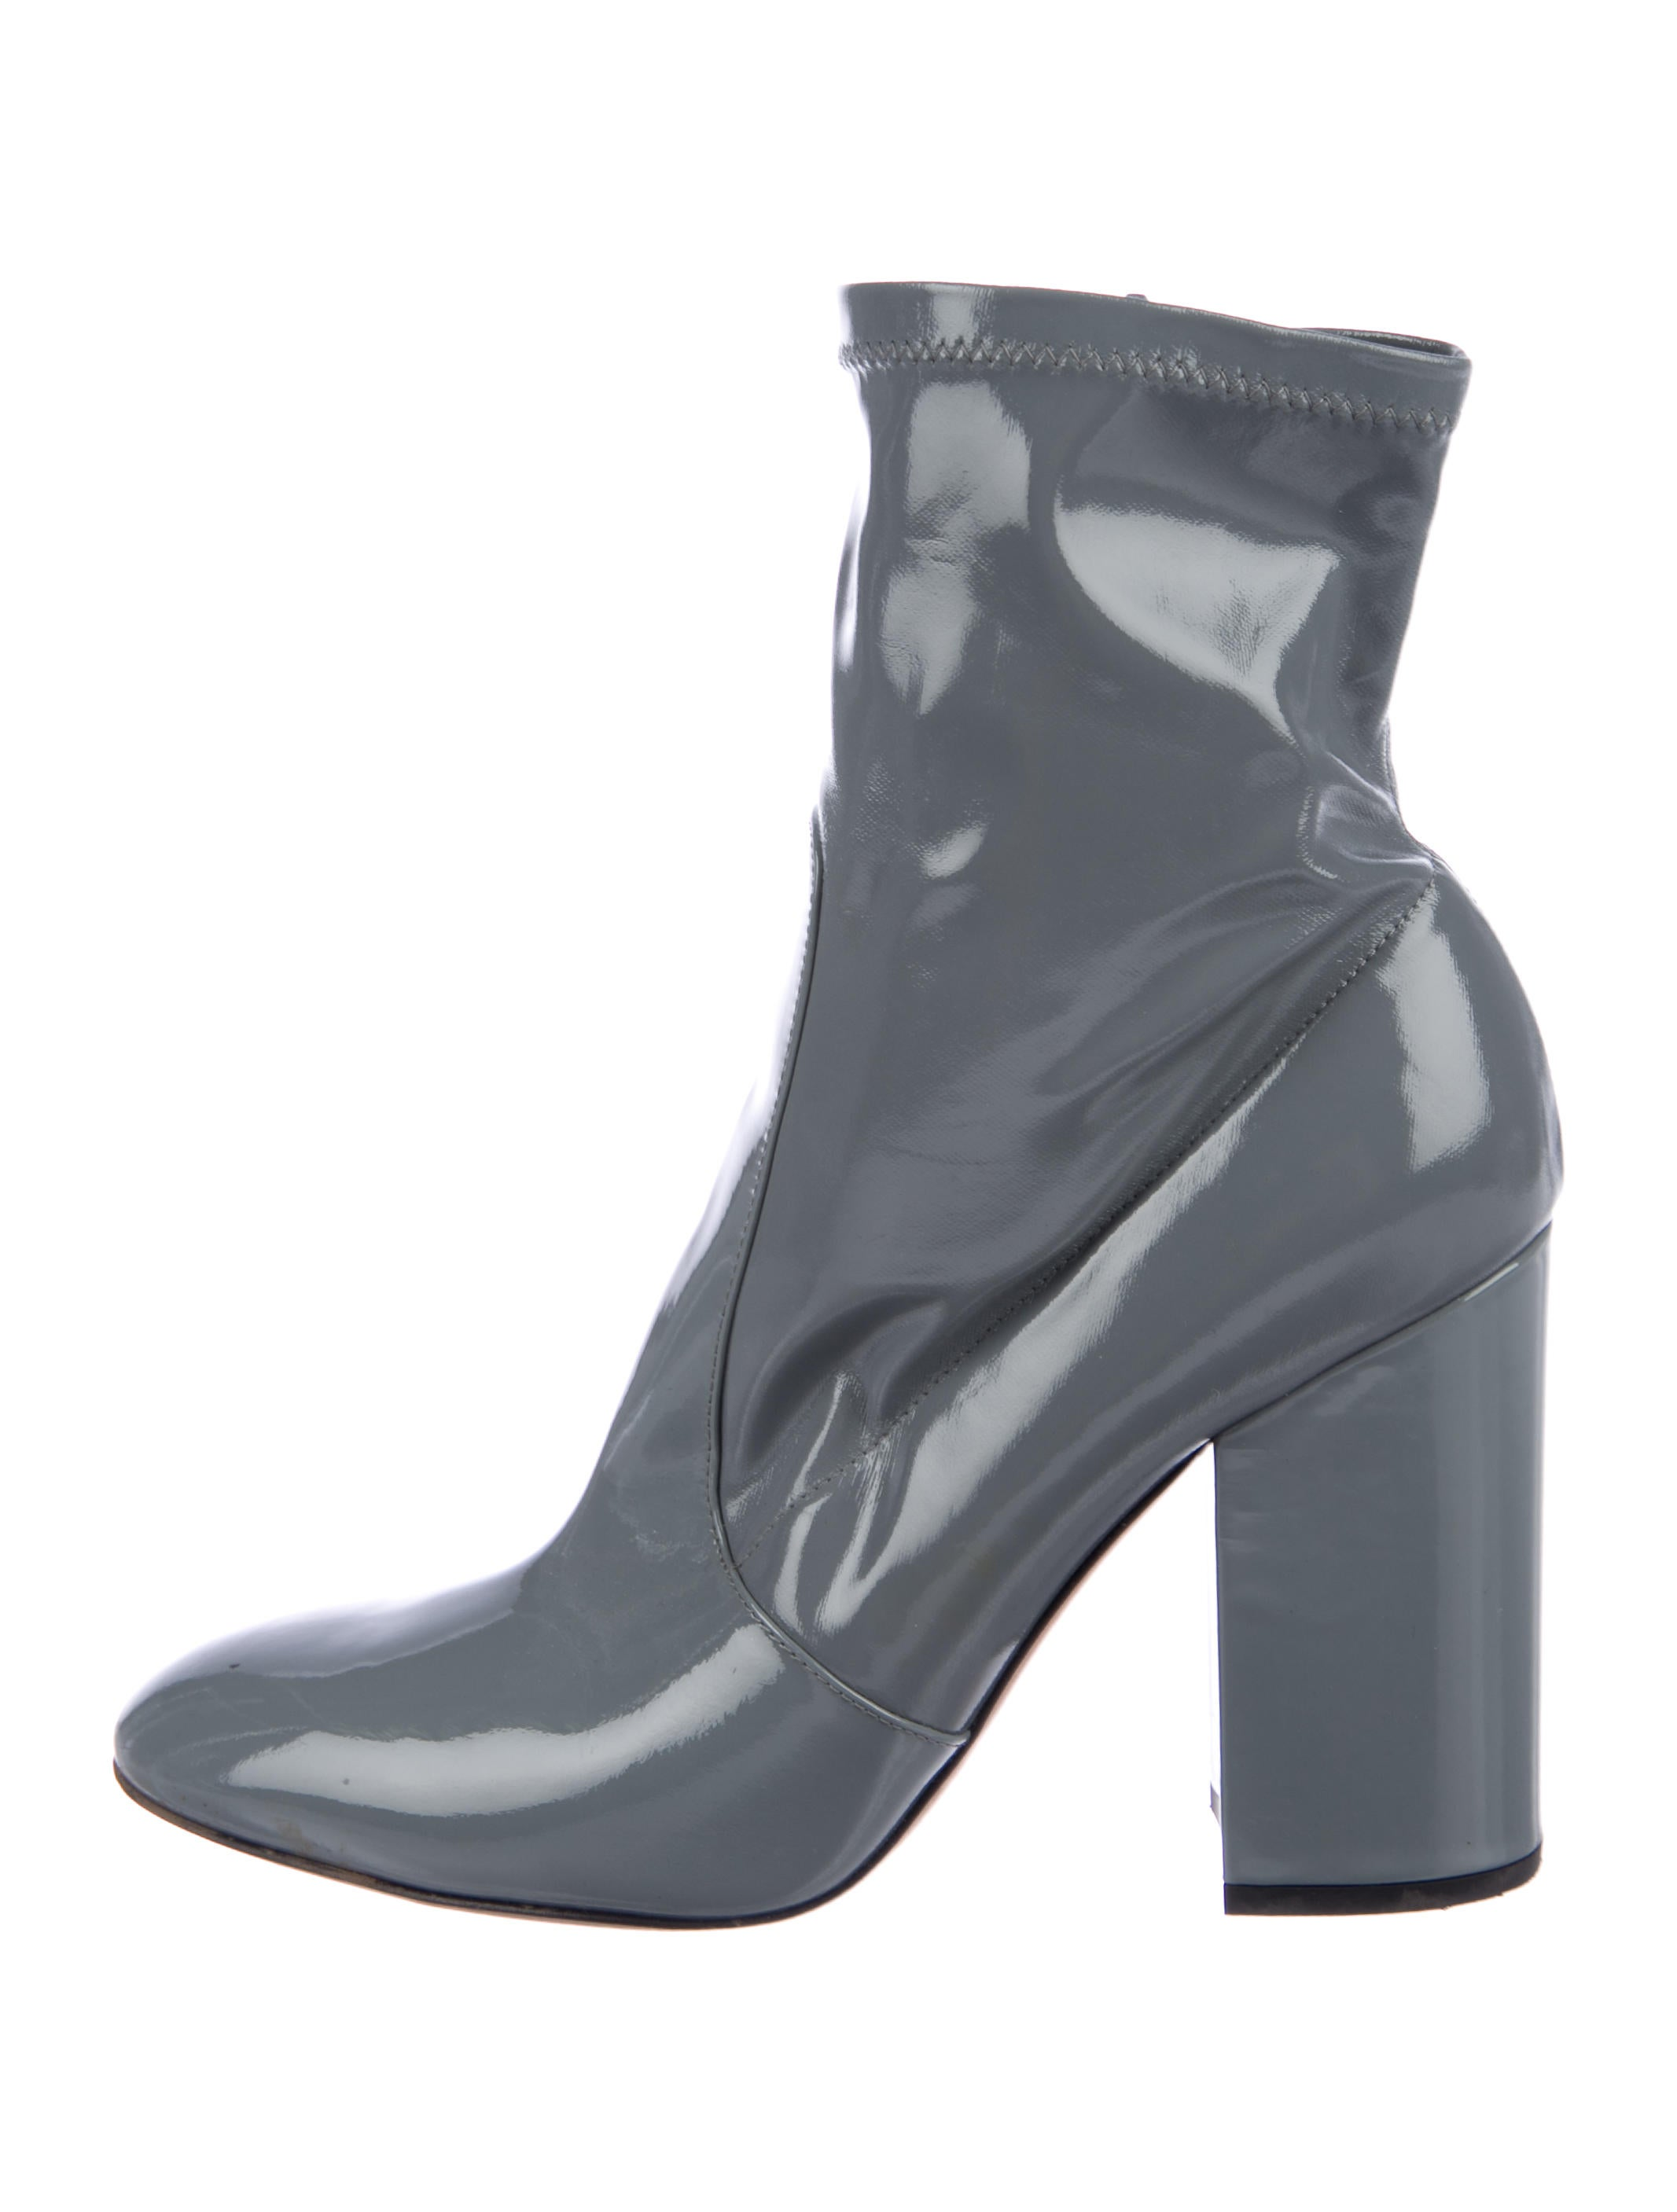 1adaa87d770 Valentino Patent Leather Ankle Boots - Shoes - VAL84915 | The RealReal